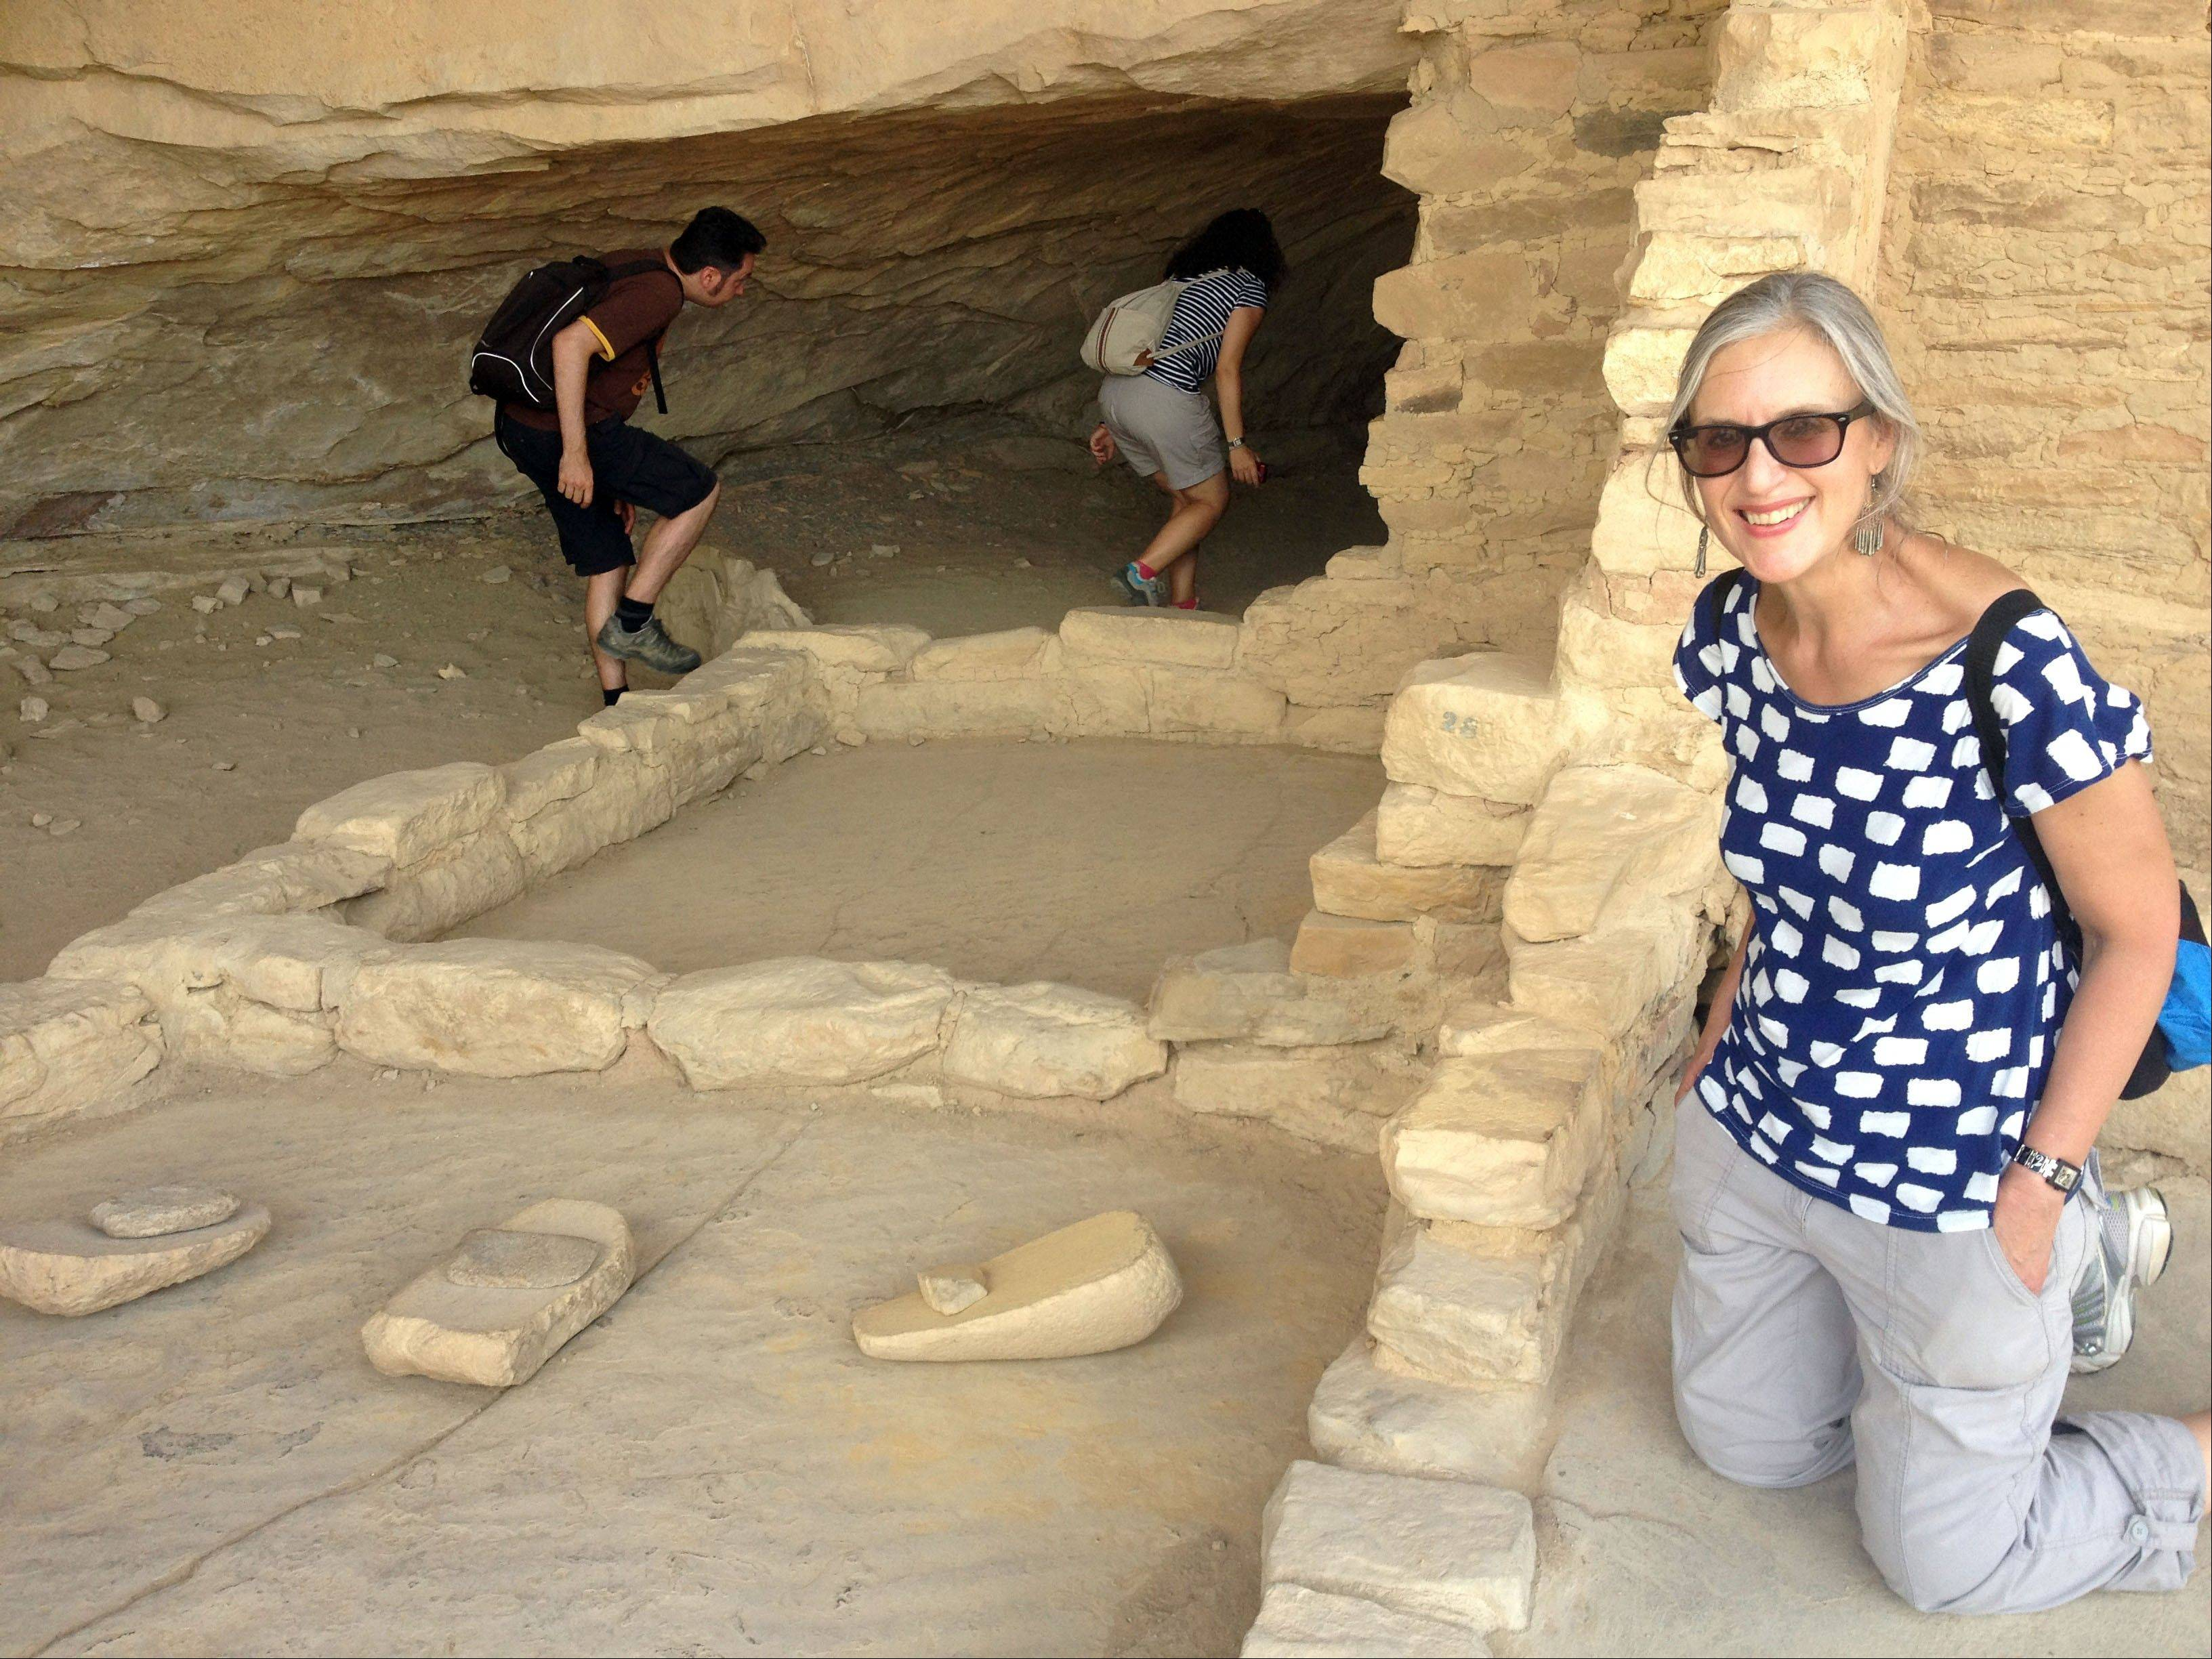 Writer Karen Matthews visited Balcony House in Mesa Verde National Park this summer. The tools shown called manos and metates, excavated there, were used for grinding corn.